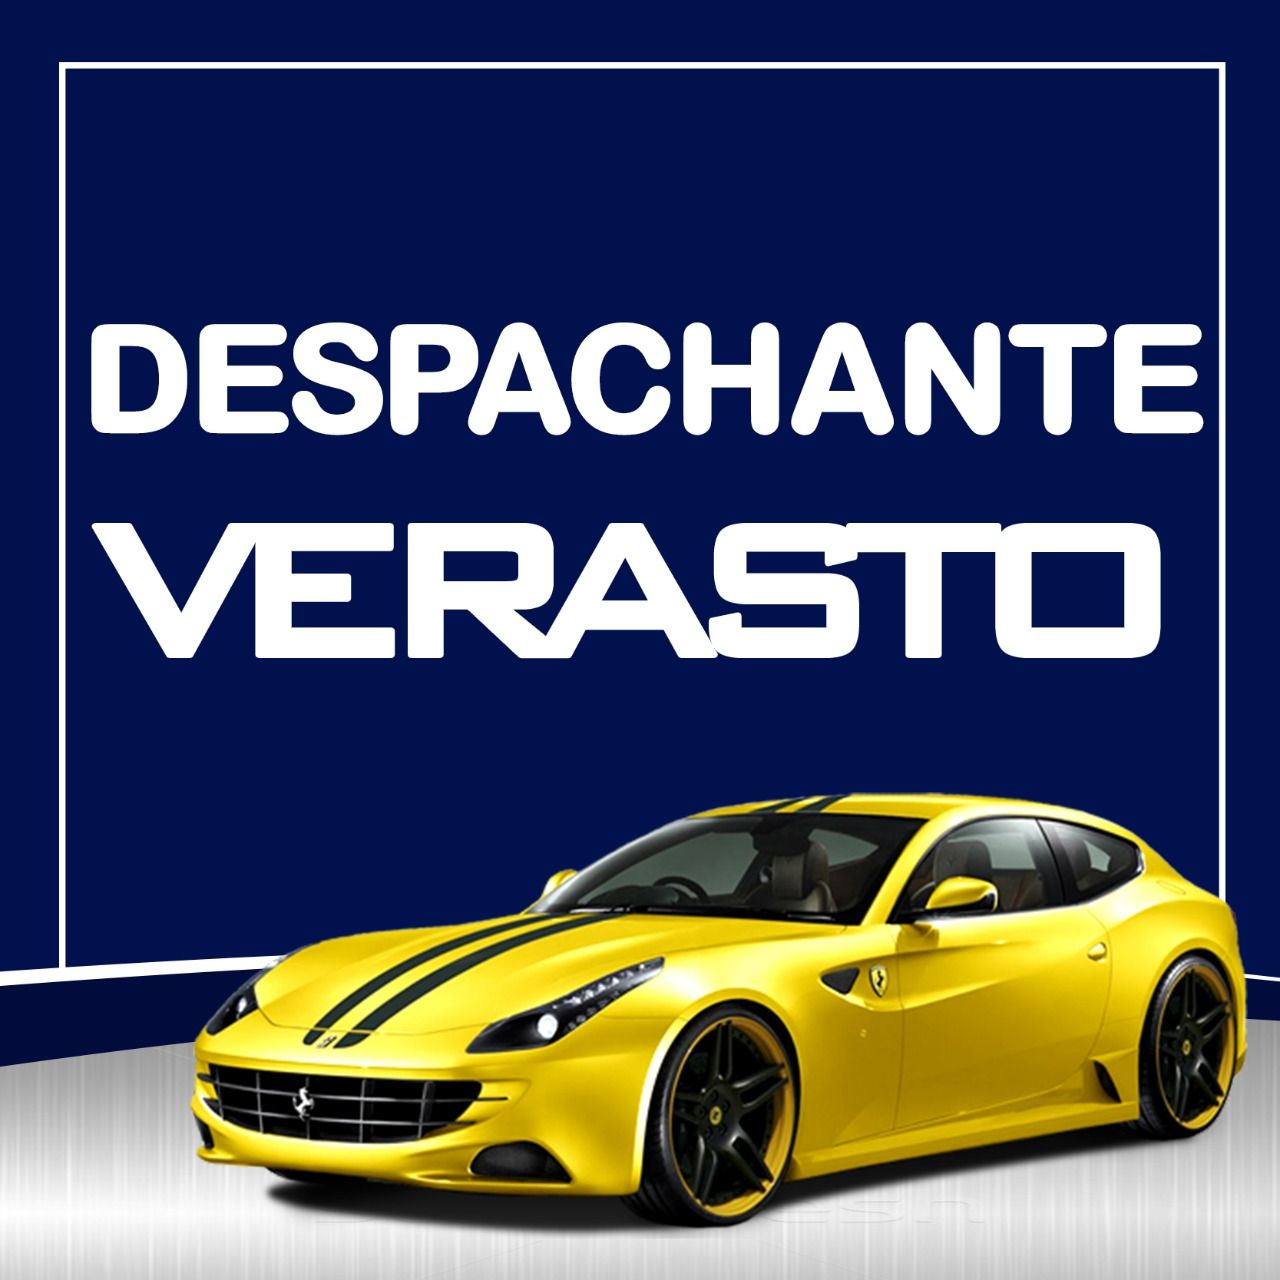 Despachante Verasto em Bertioga